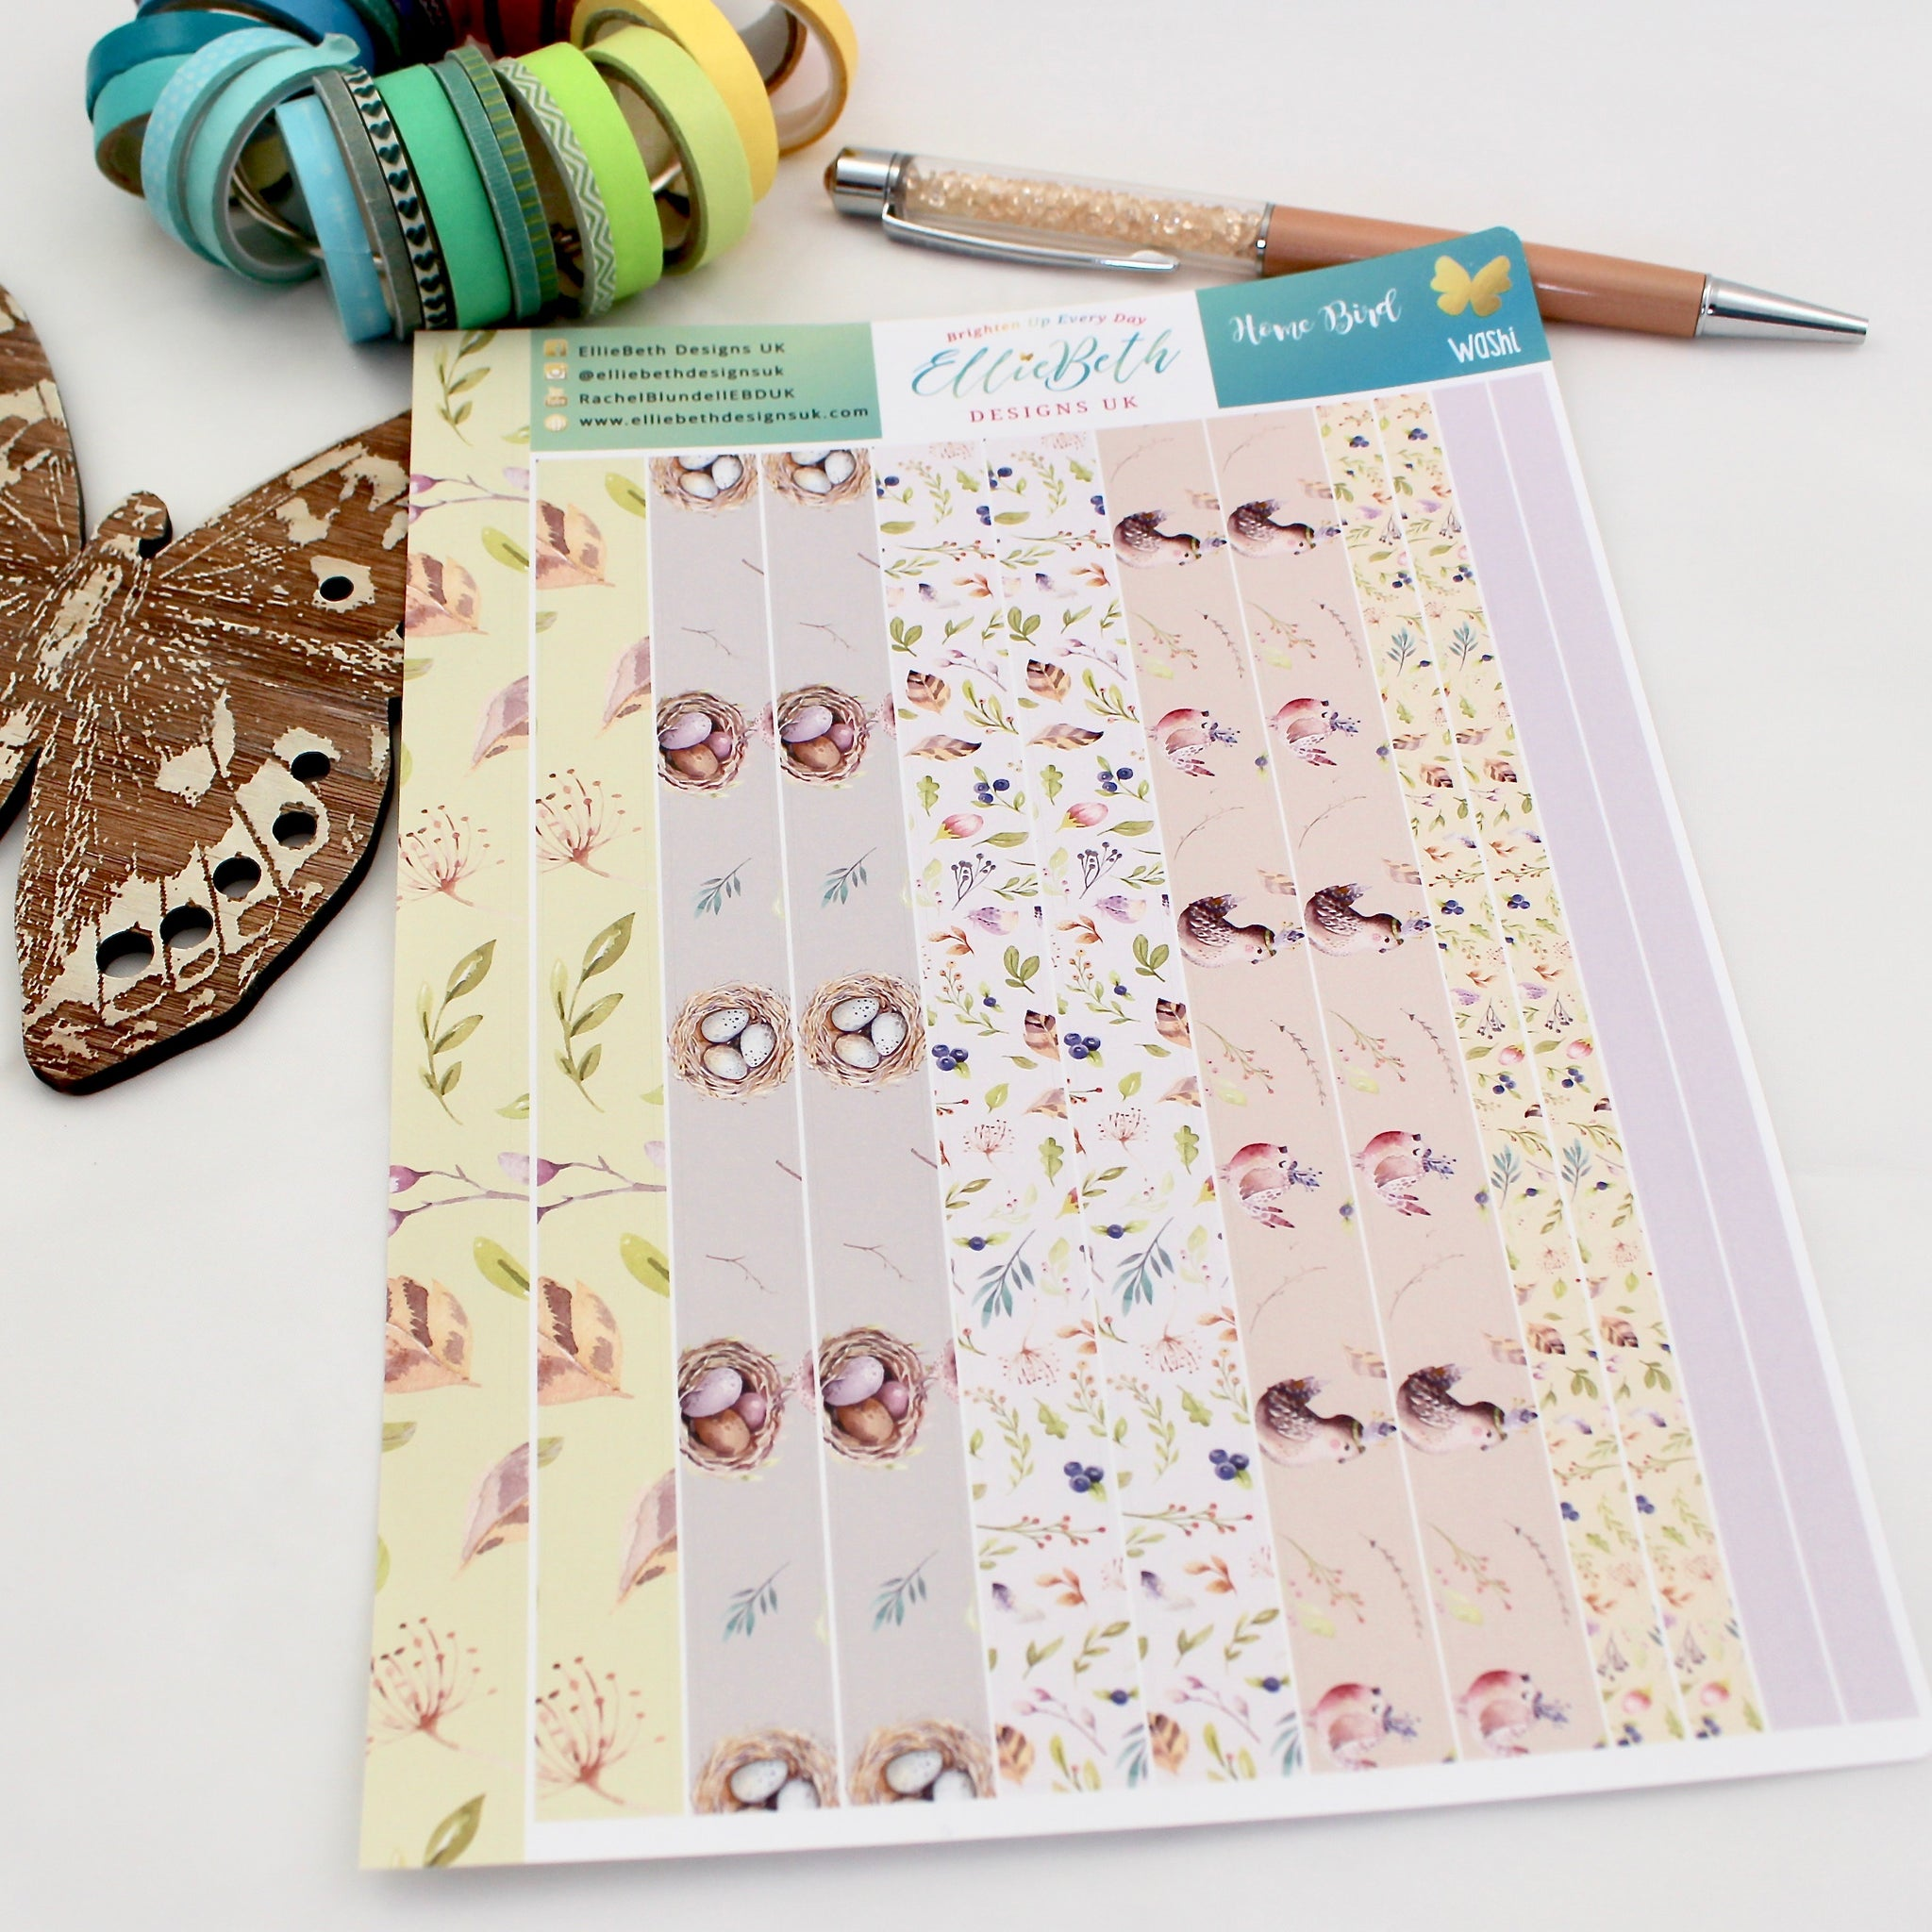 'Home Bird' - Washi Strips -  A5 binder ready planner stickers